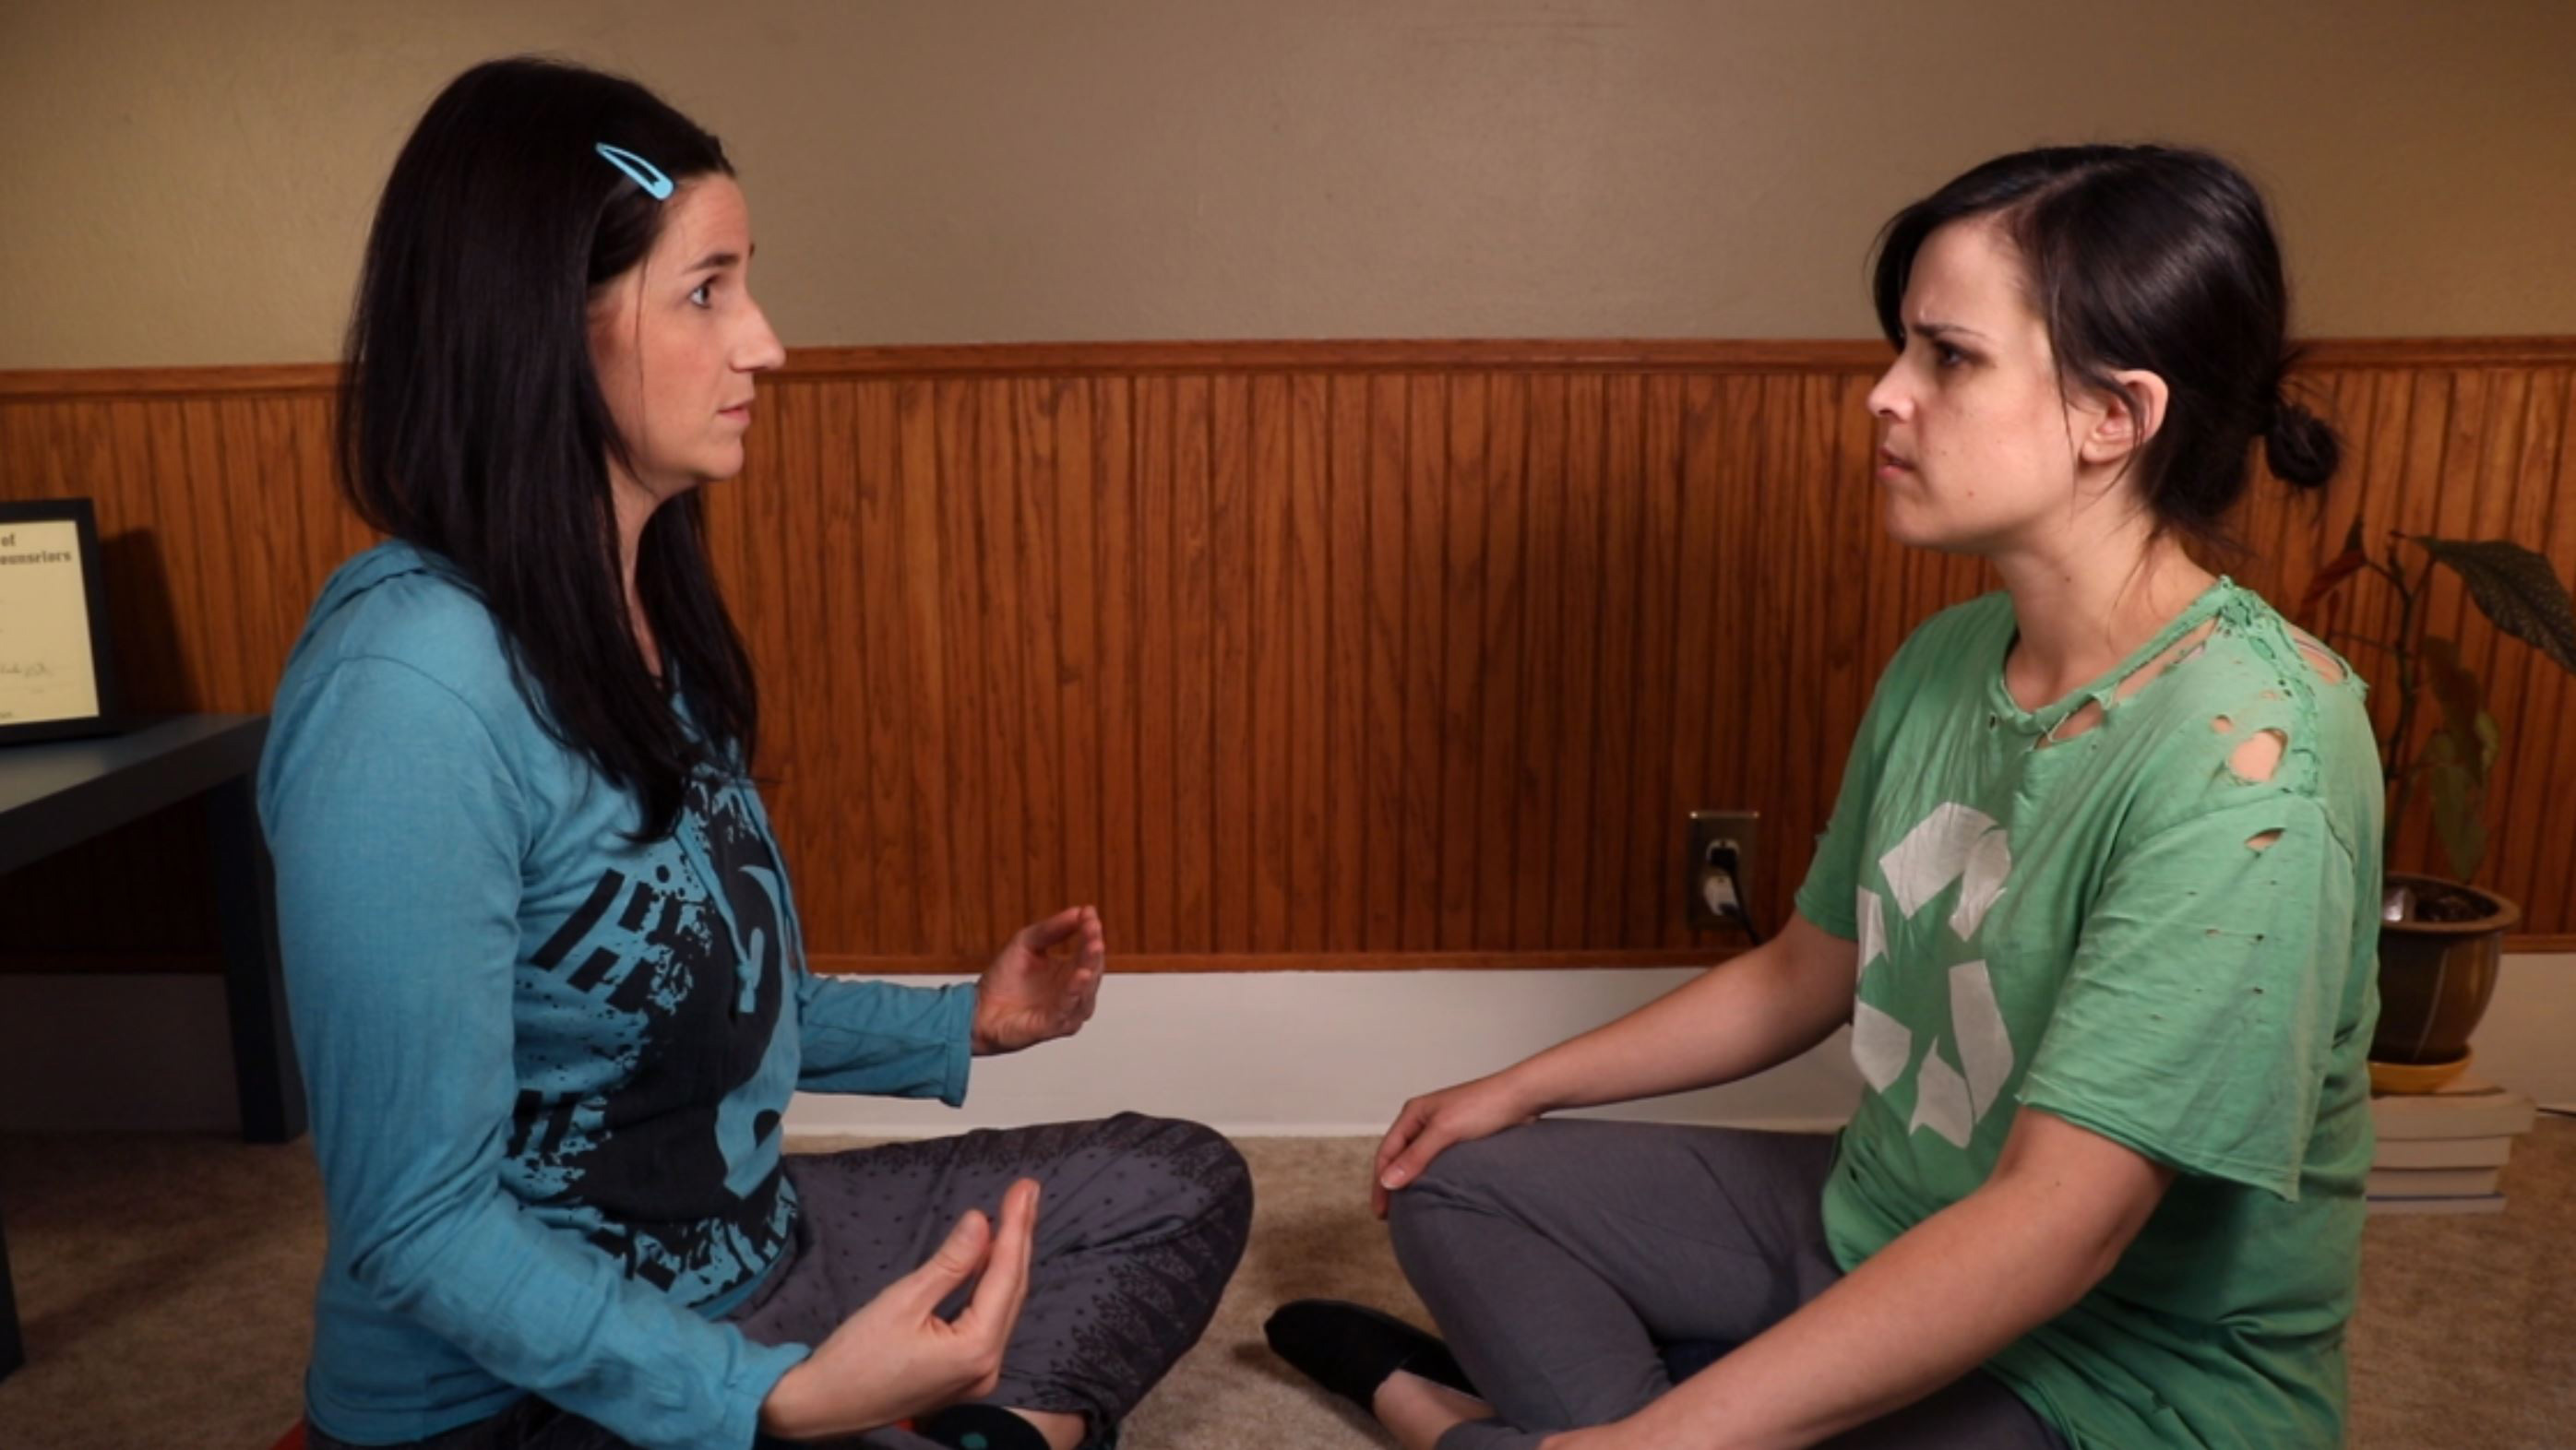 Still from Half-Quaked: Dr. Chameleon (Casey Pfeifer) leads Journalist Roberta Aguilar (Rochelle Muzquiz) in a frustrating meditation.